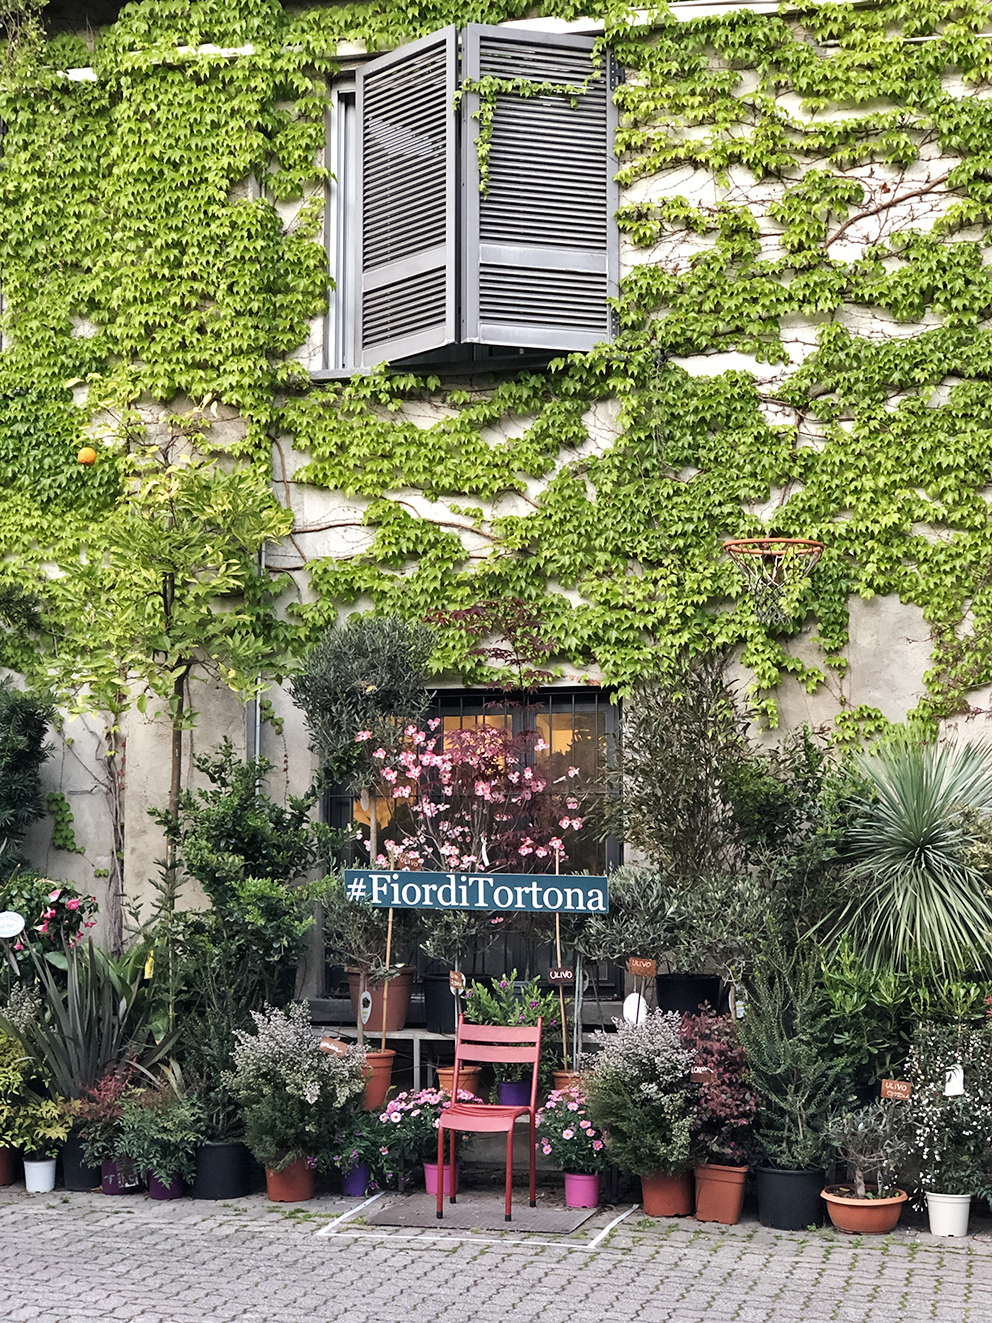 French For Pineapple Blog - Milan Design Week Diary 2019 - Day 1 - Fuorisalone